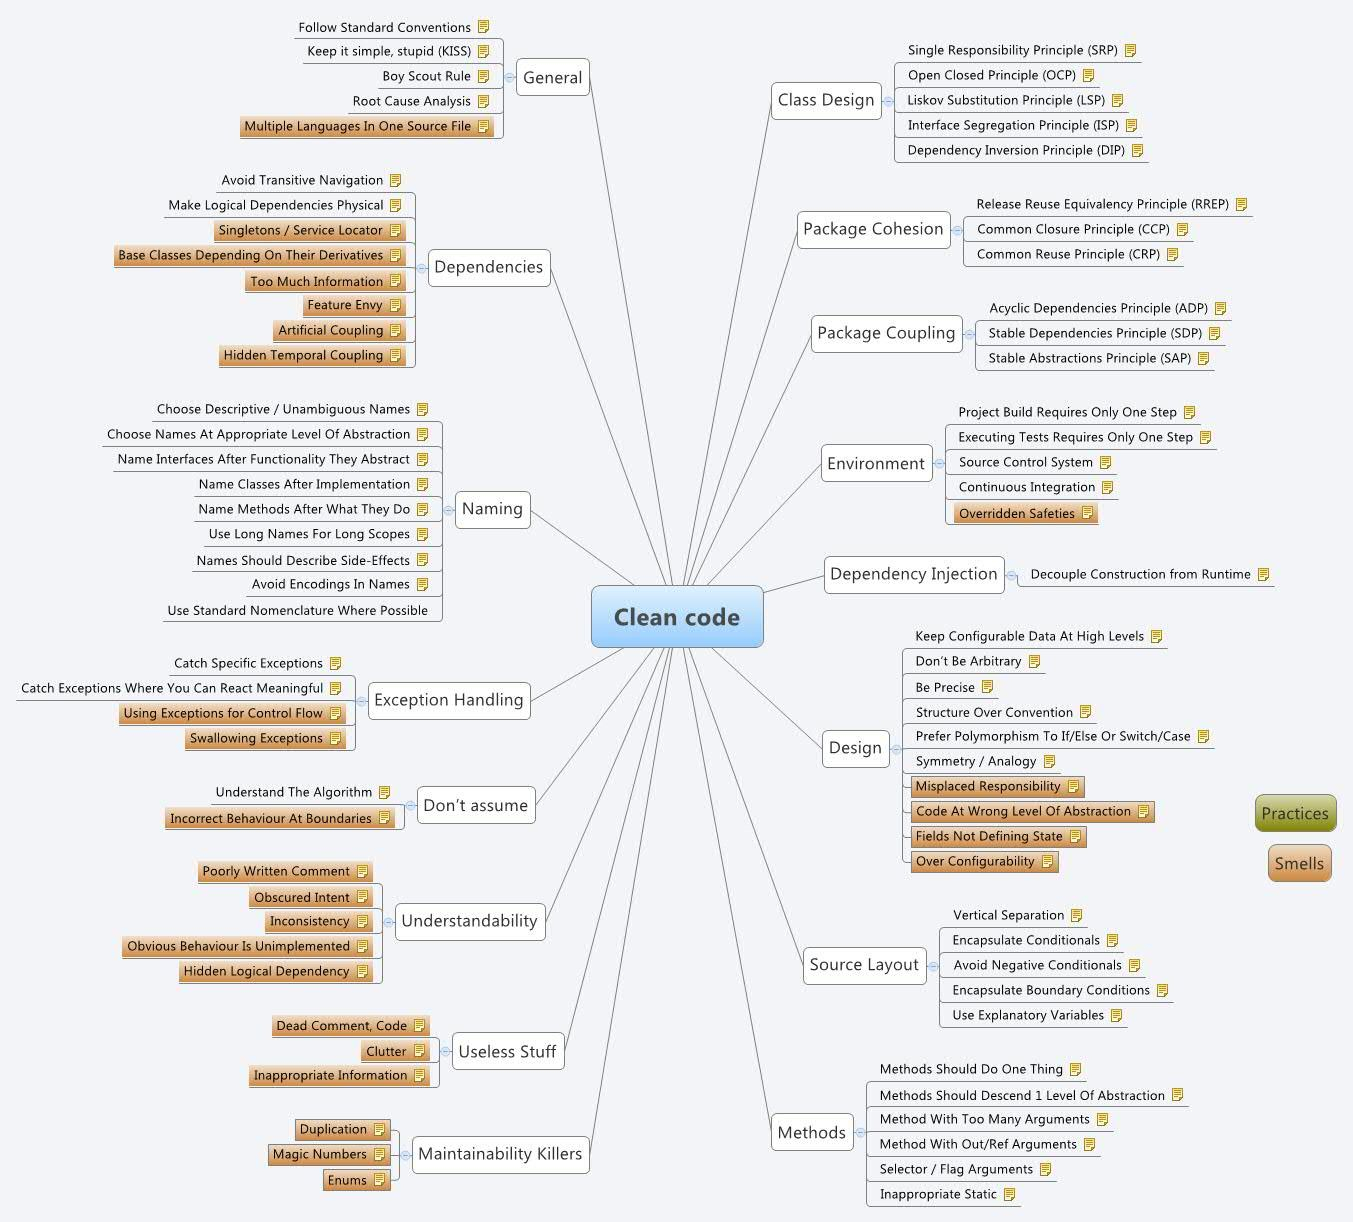 Clean Code - Hung_Koala - Xmind: The Most Professional Mind with regard to Xmind Er Diagram